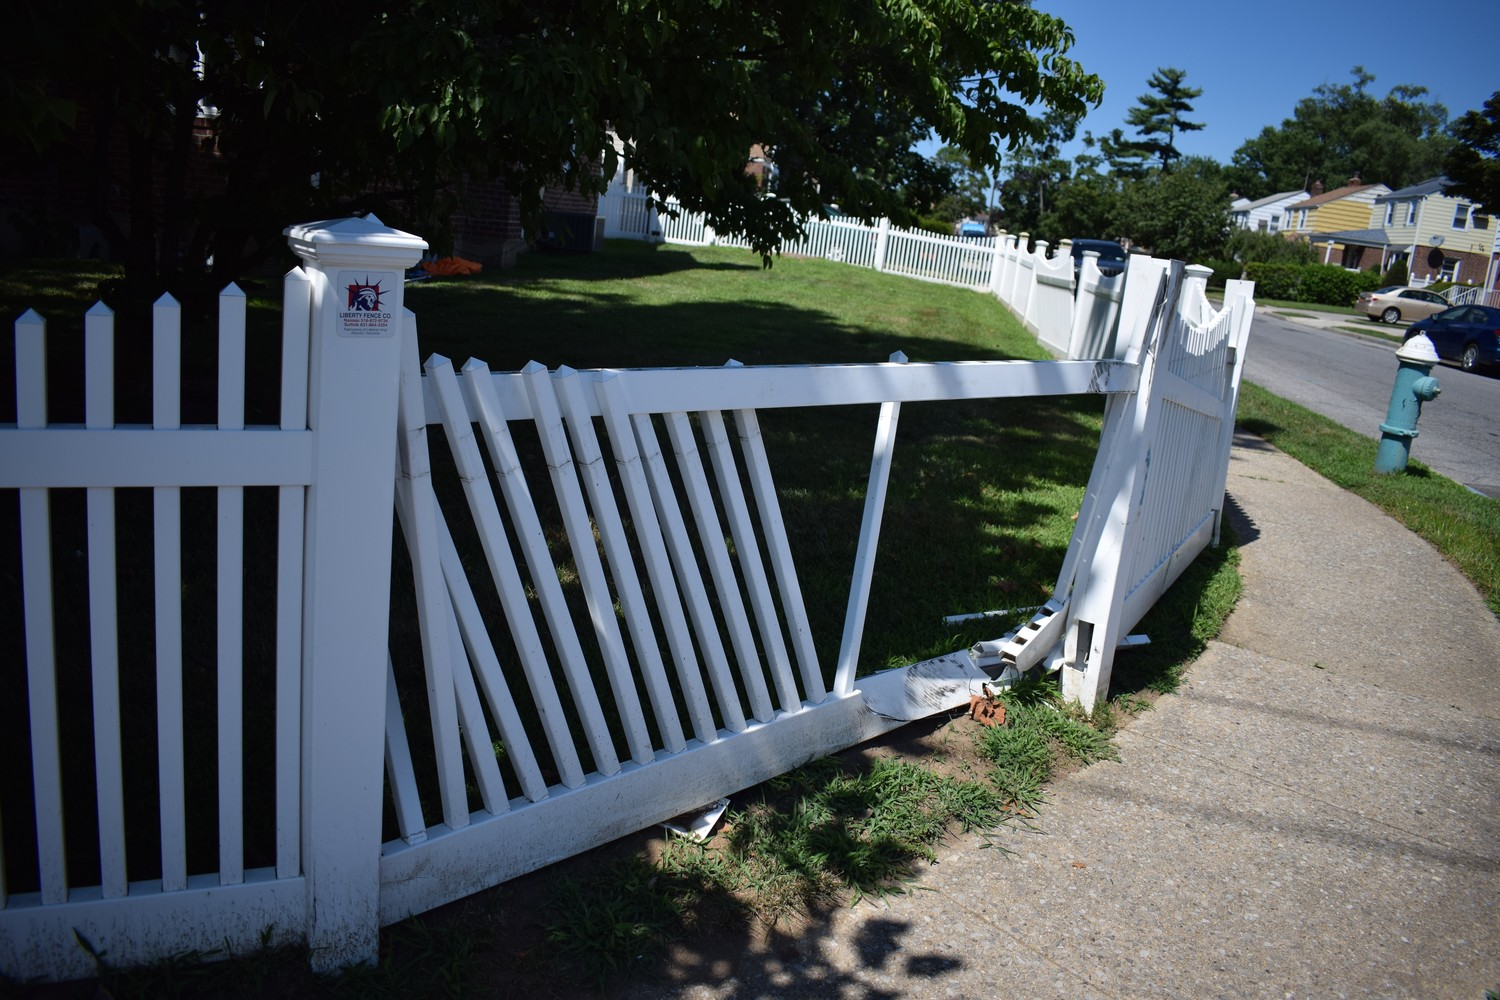 A car slammed into the fence of a home along Dutch Broadway in late June. A police officer said this was the fifth auto incident he had responded to at that location.